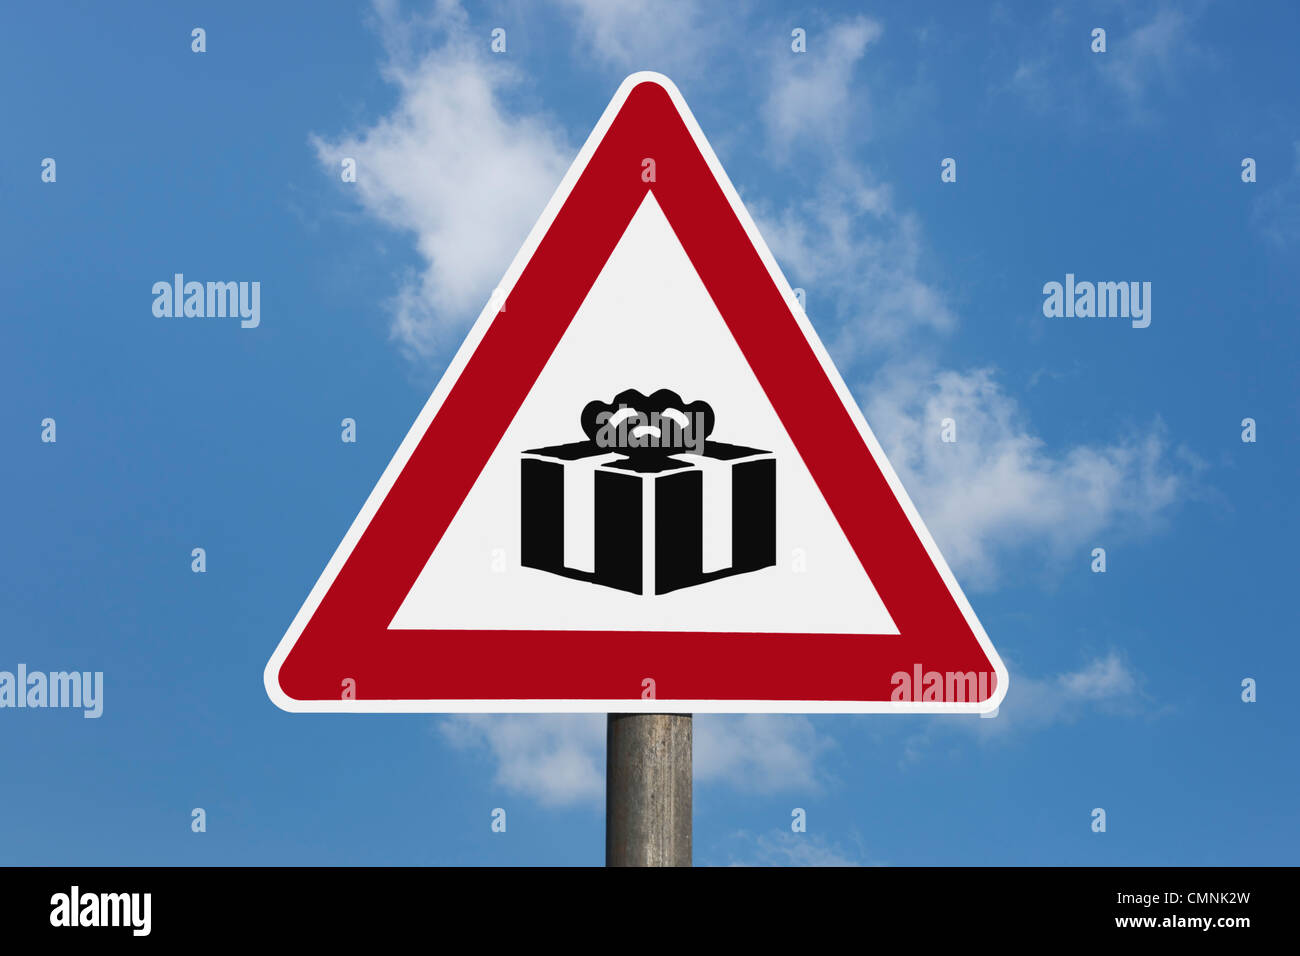 Detail photo of a danger sign with a present in the middle, background sky. - Stock Image